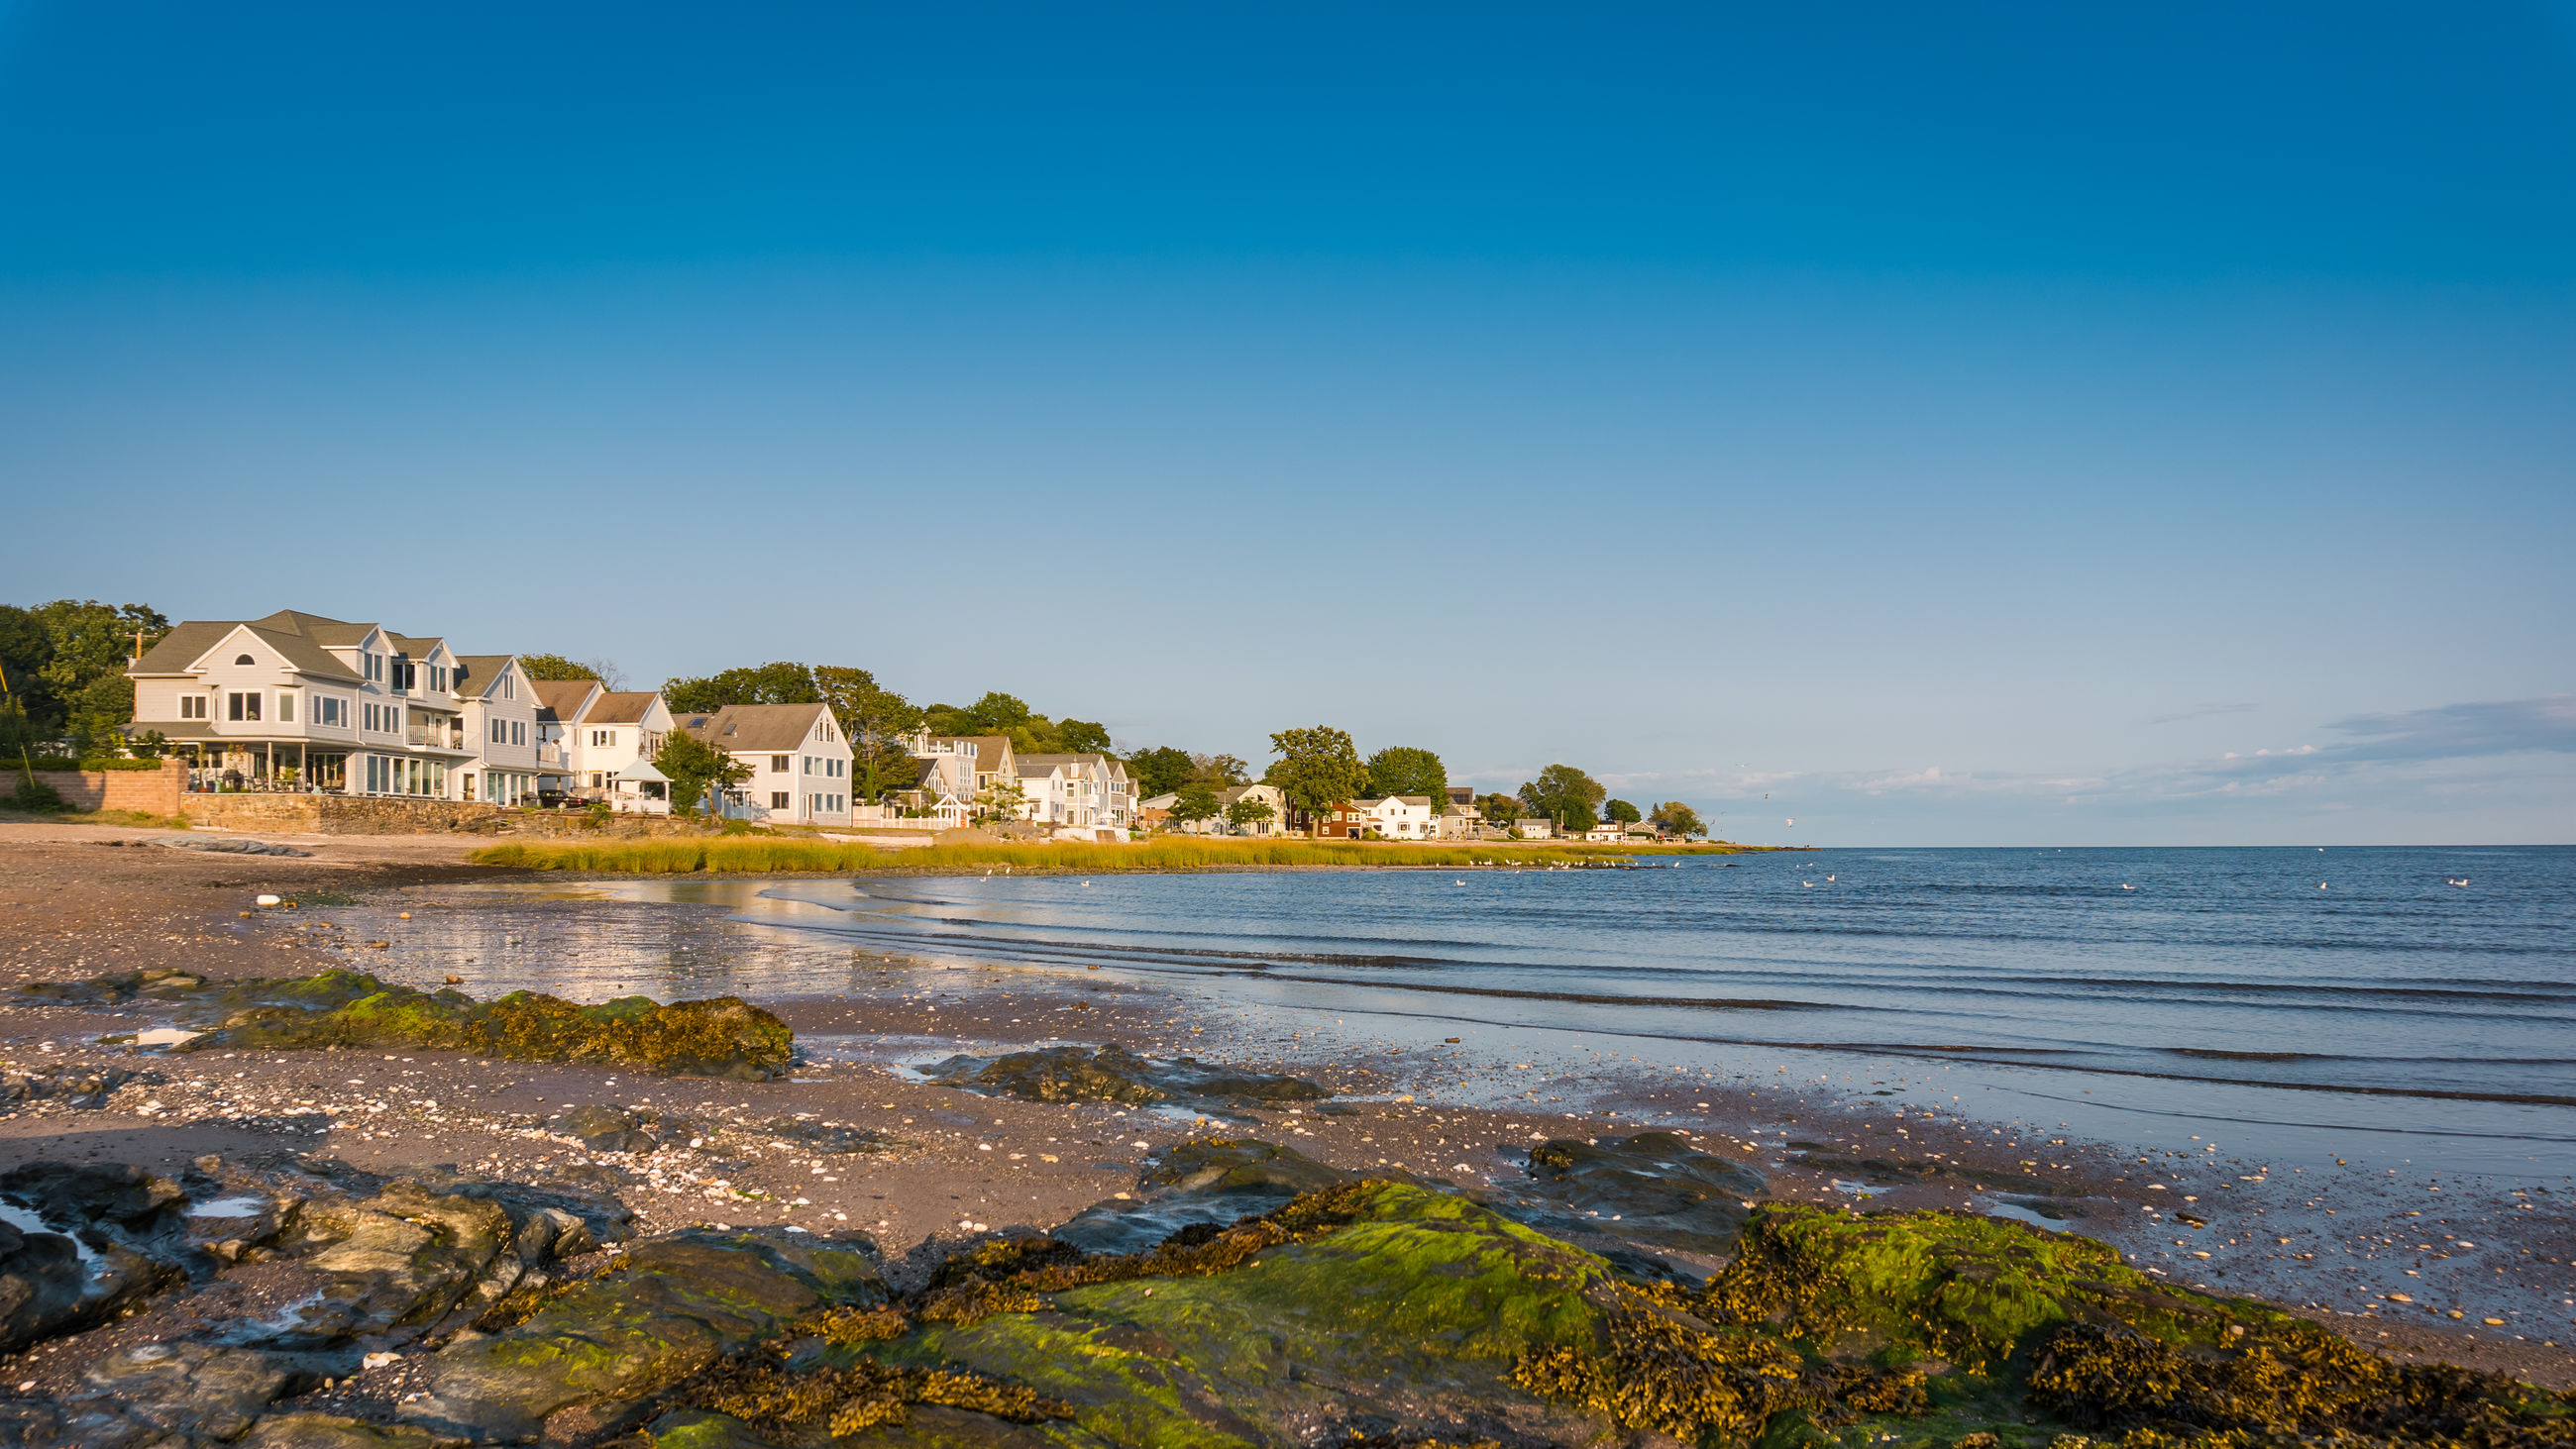 sea, water, beach, architecture, nature, clear sky, sky, tranquility, outdoors, holiday, no people, blue, scenics, built structure, beauty in nature, day, tree